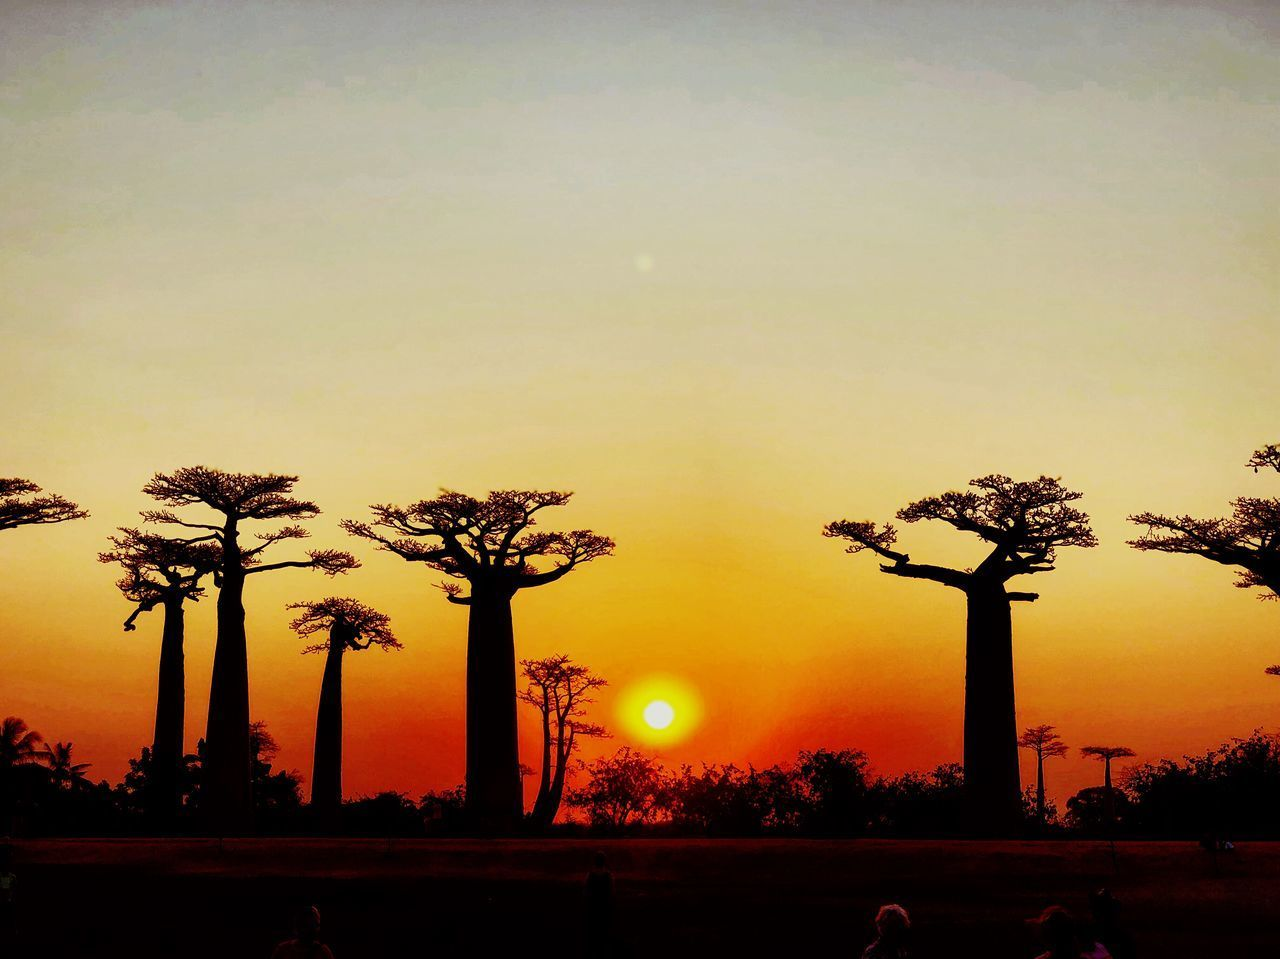 sunset, sky, plant, tree, silhouette, orange color, nature, beauty in nature, sun, street, scenics - nature, palm tree, outdoors, tranquility, street light, tropical climate, growth, no people, tranquil scene, idyllic